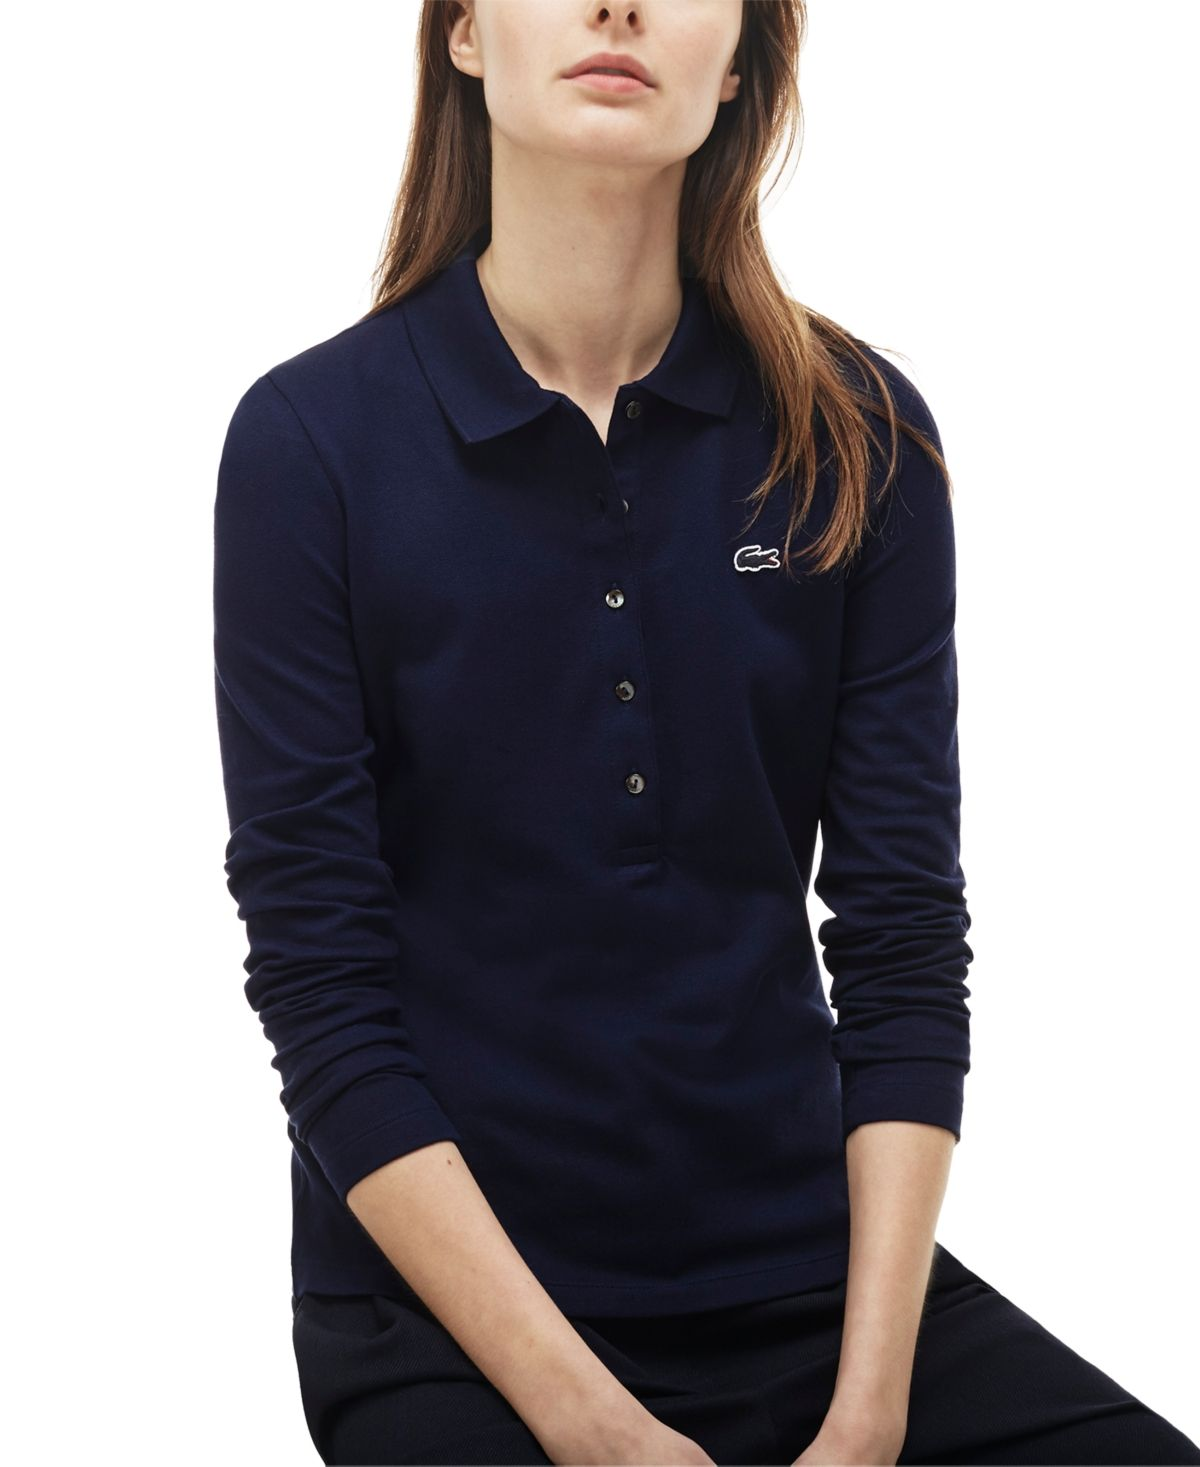 Lacoste Long-Sleeve Slim-Fit Stretch Pique Polo Shirt - Navy Blue ...